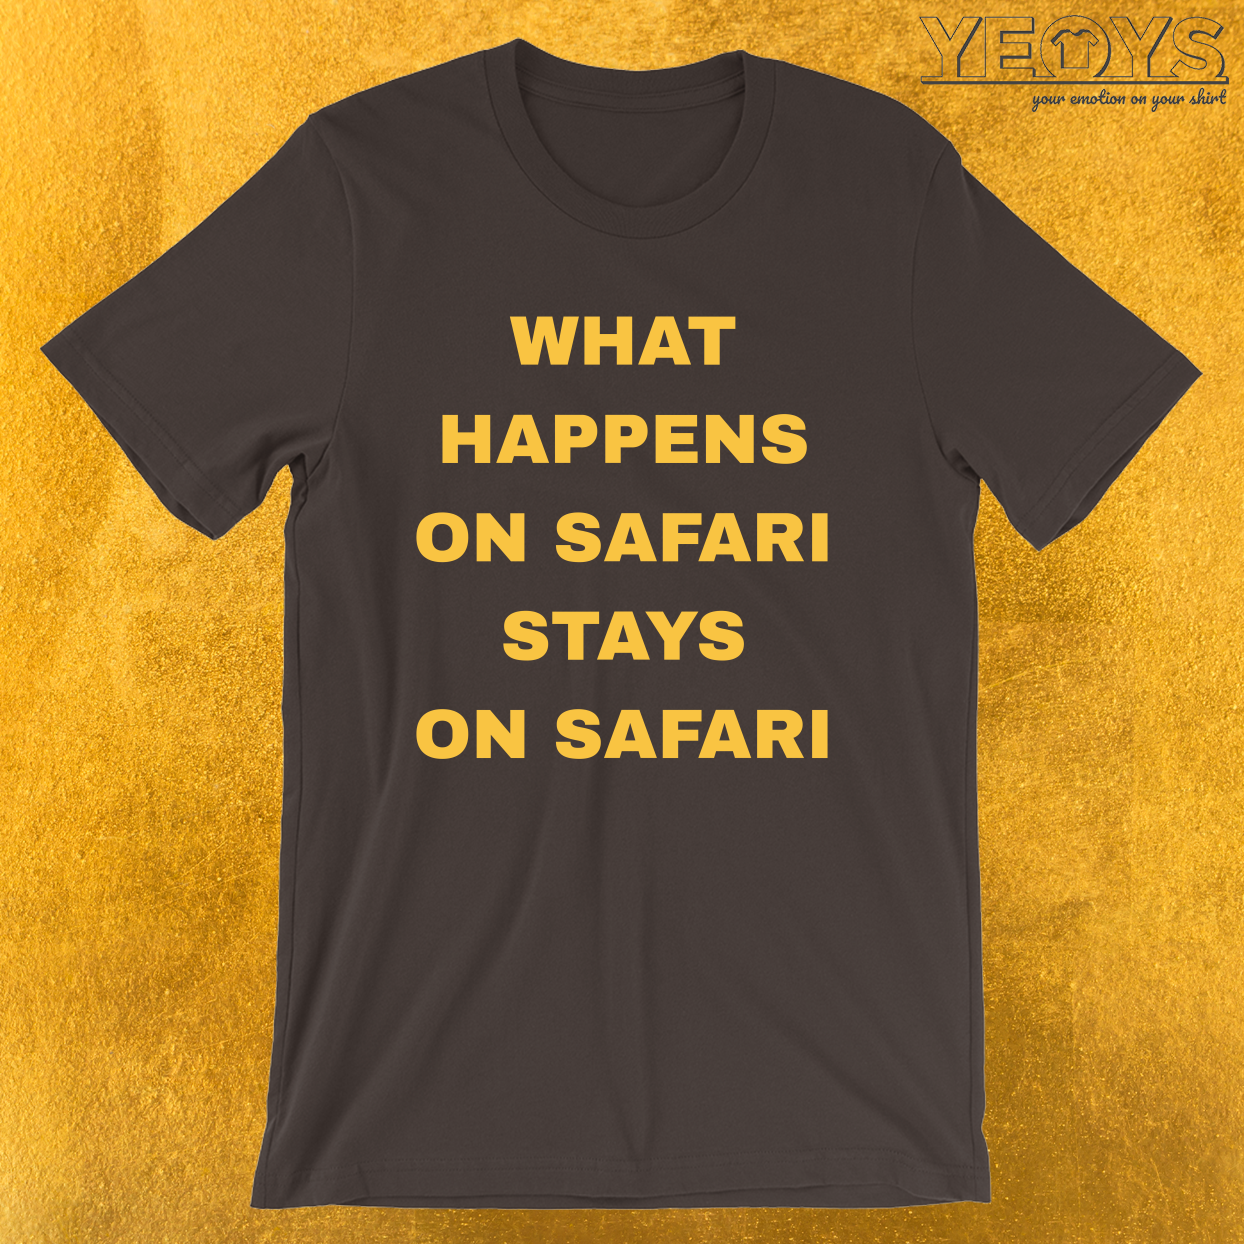 What Happens On Safari – Funny Safari Tee